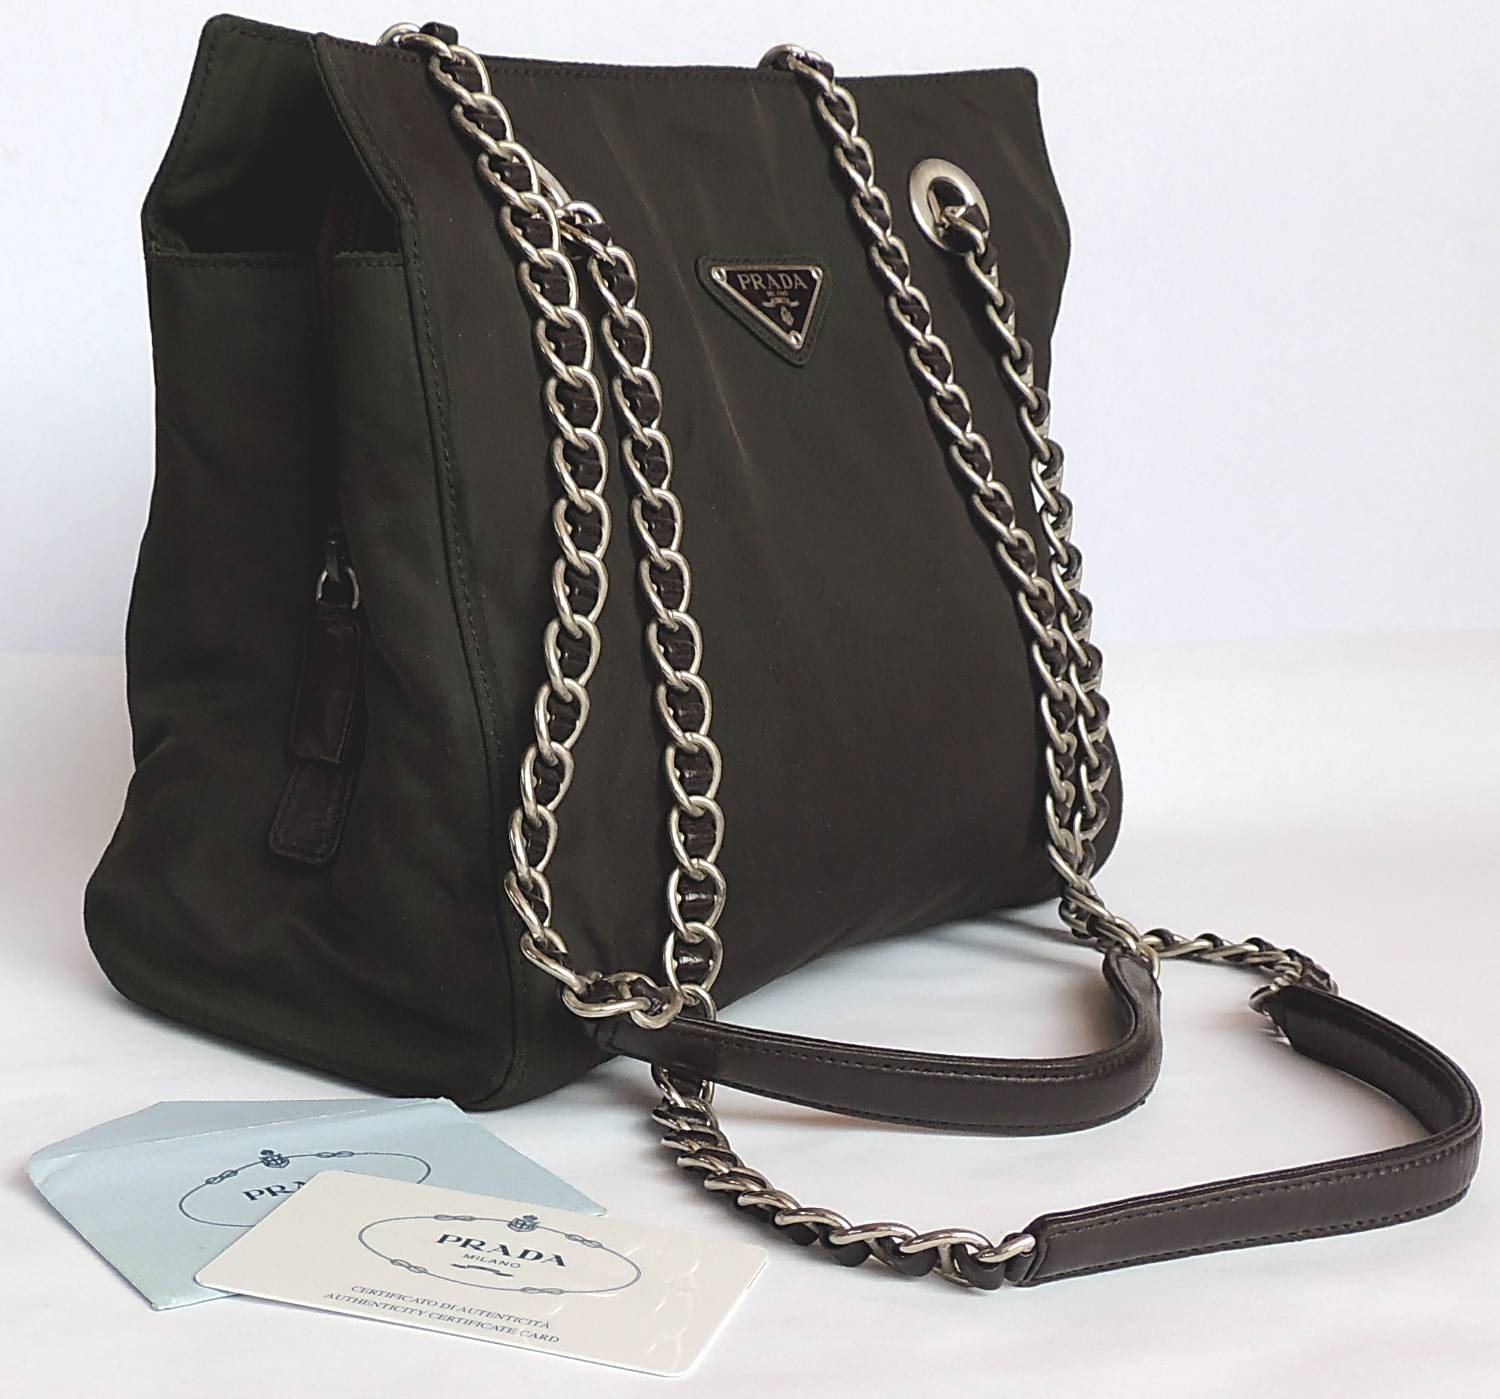 Authentic PRADA Chain Shoulder Bag